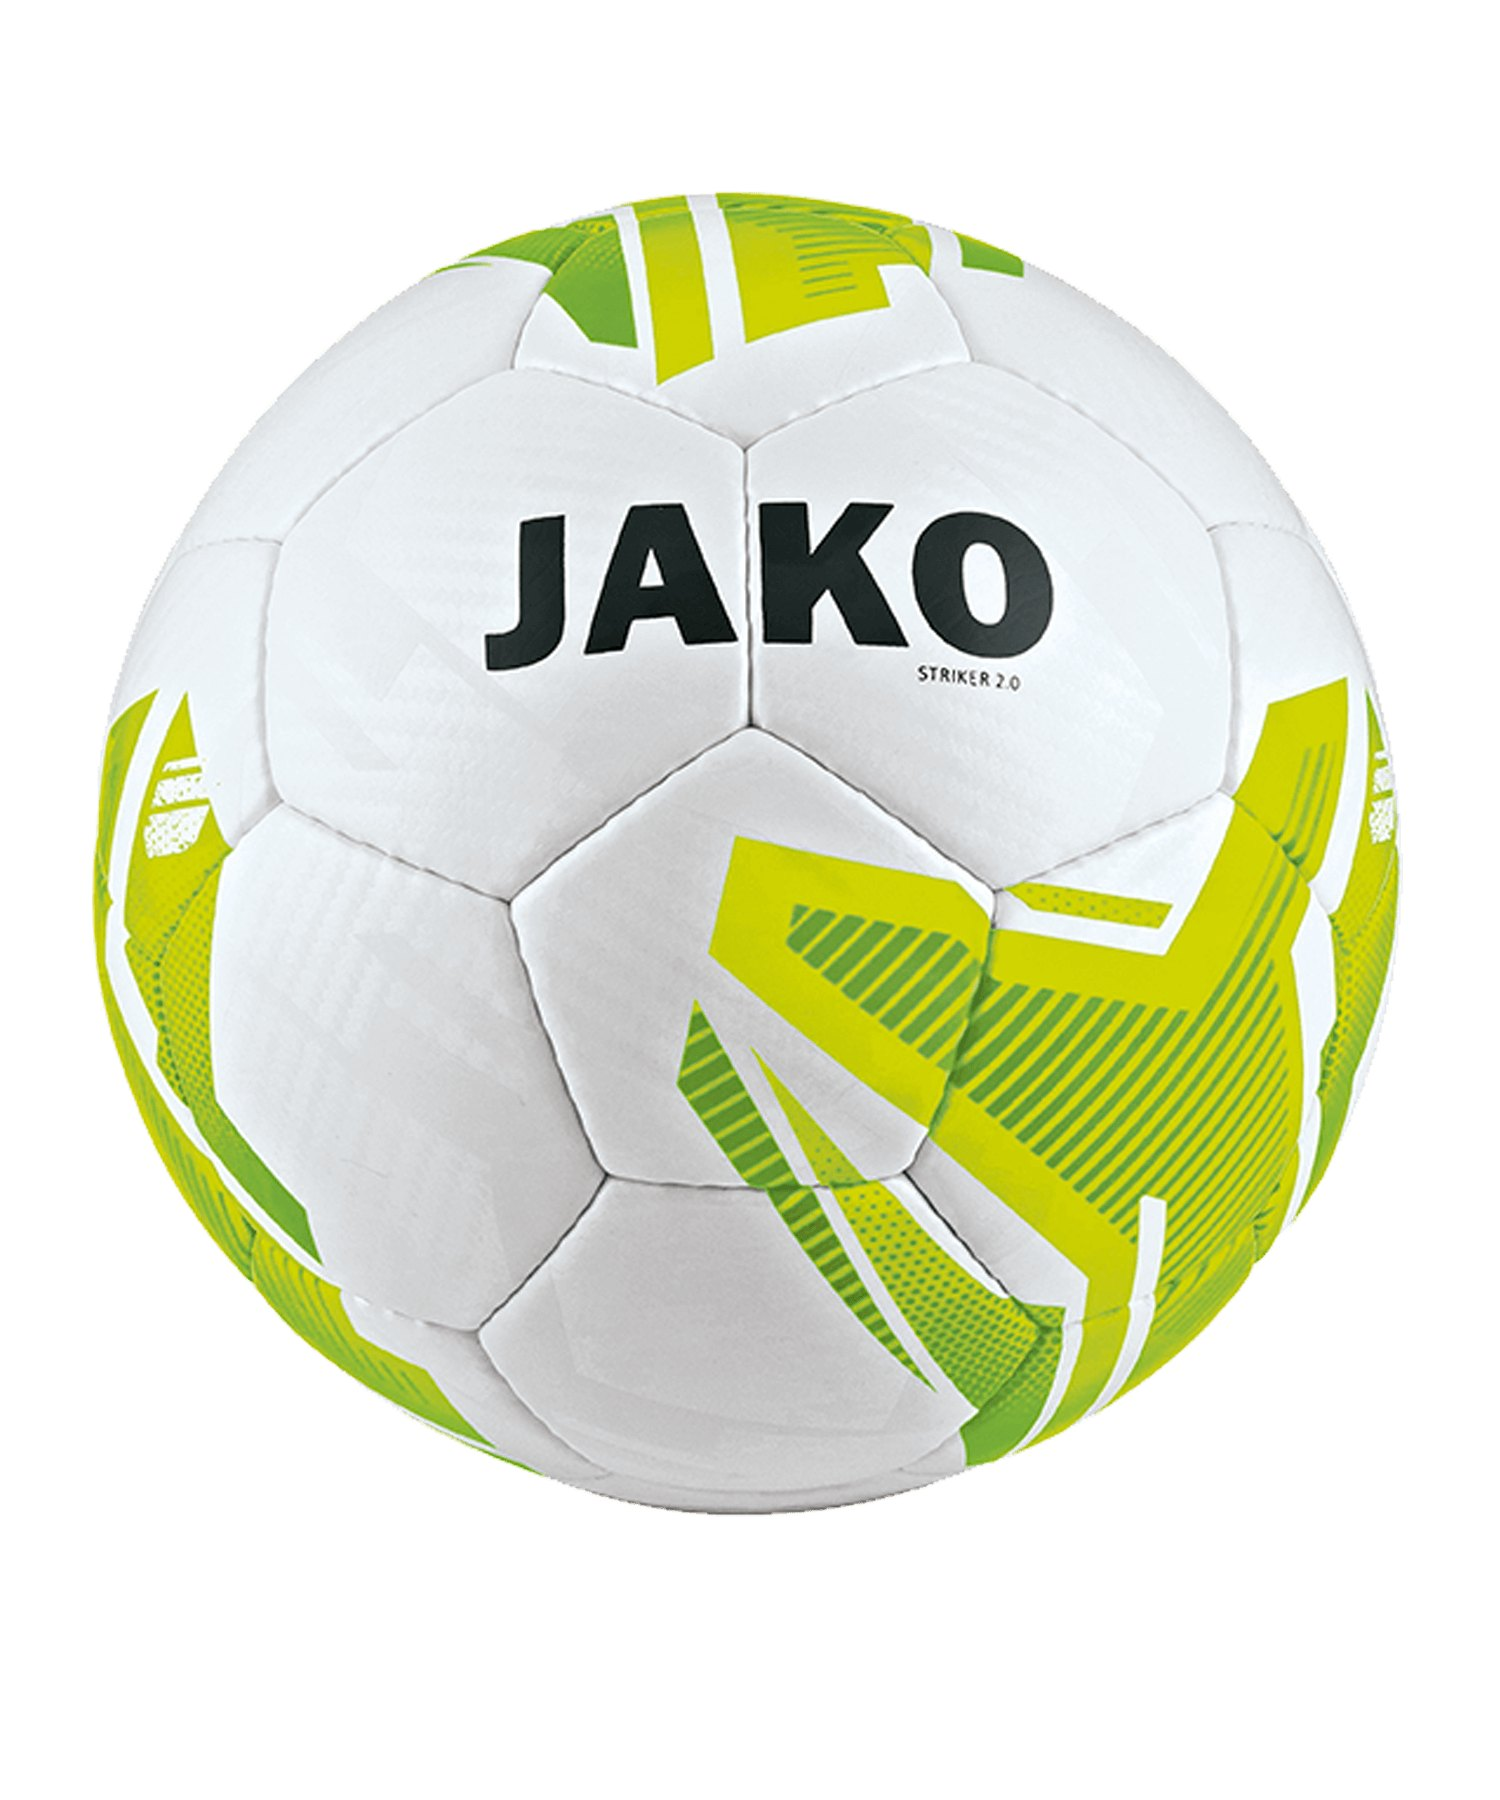 JAKO Striker 2.0 Trainingsball Weiss F31 - weiss